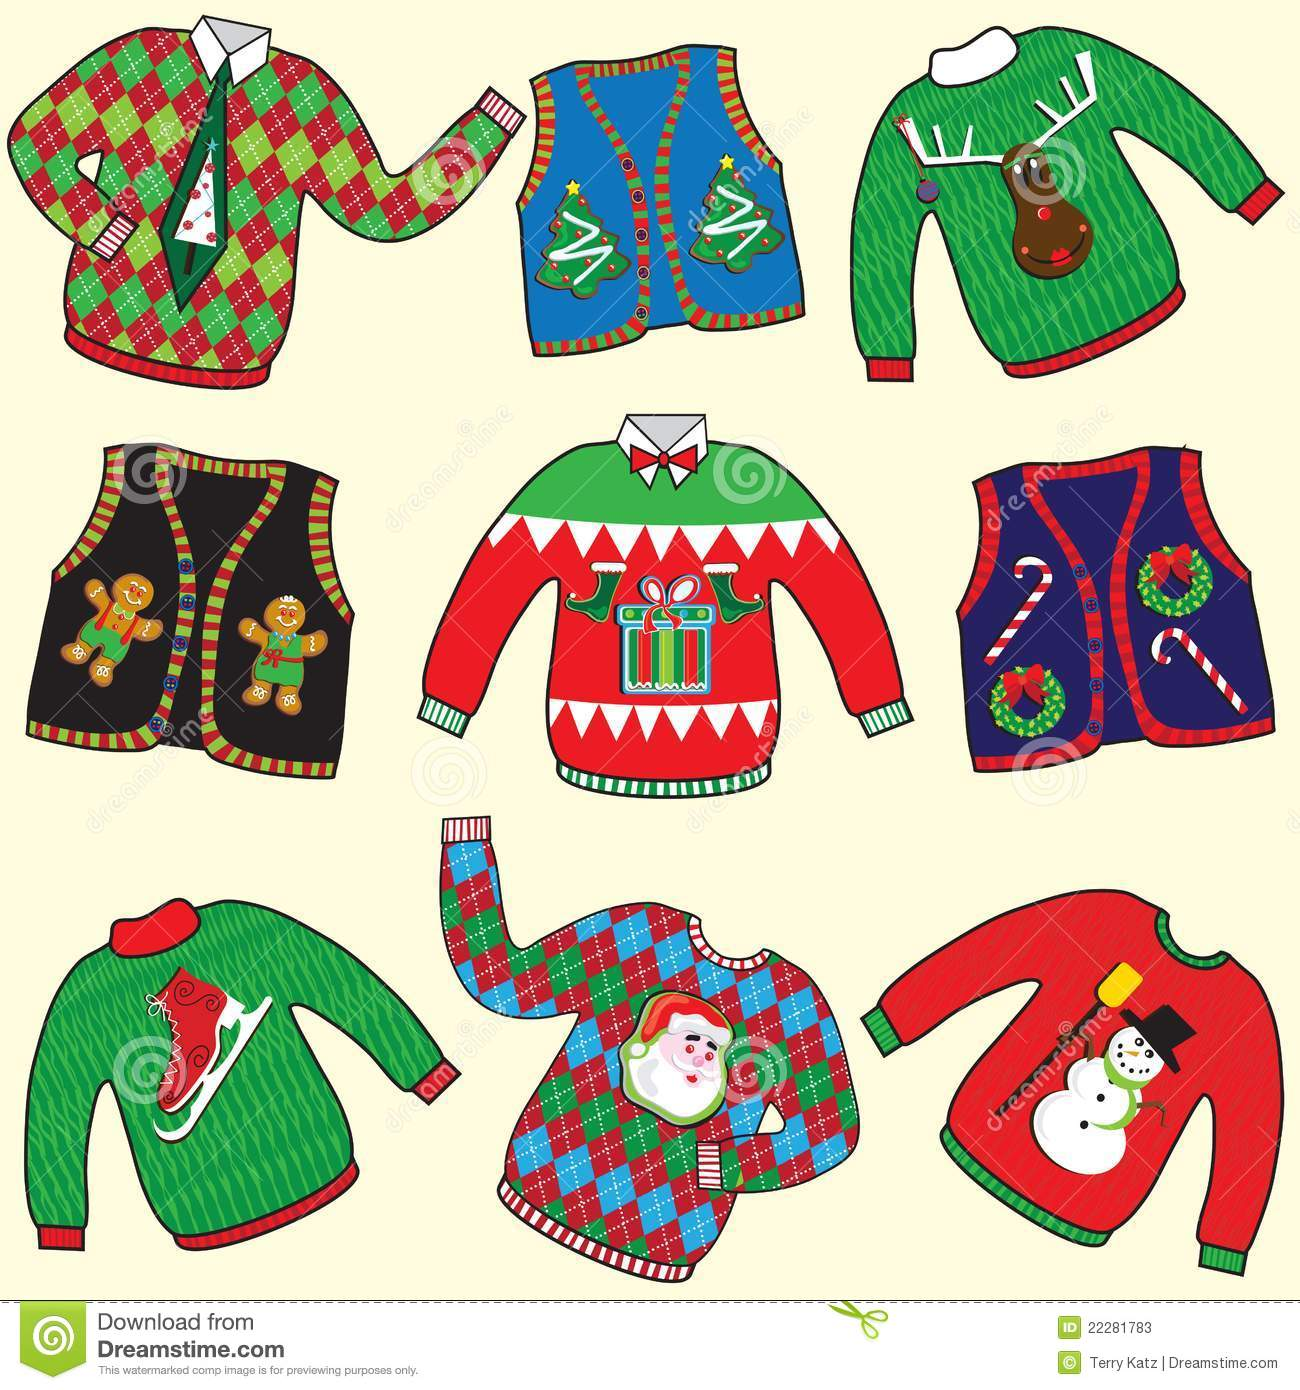 hight resolution of dare to wear ugly christmas sweaters and vests clipart